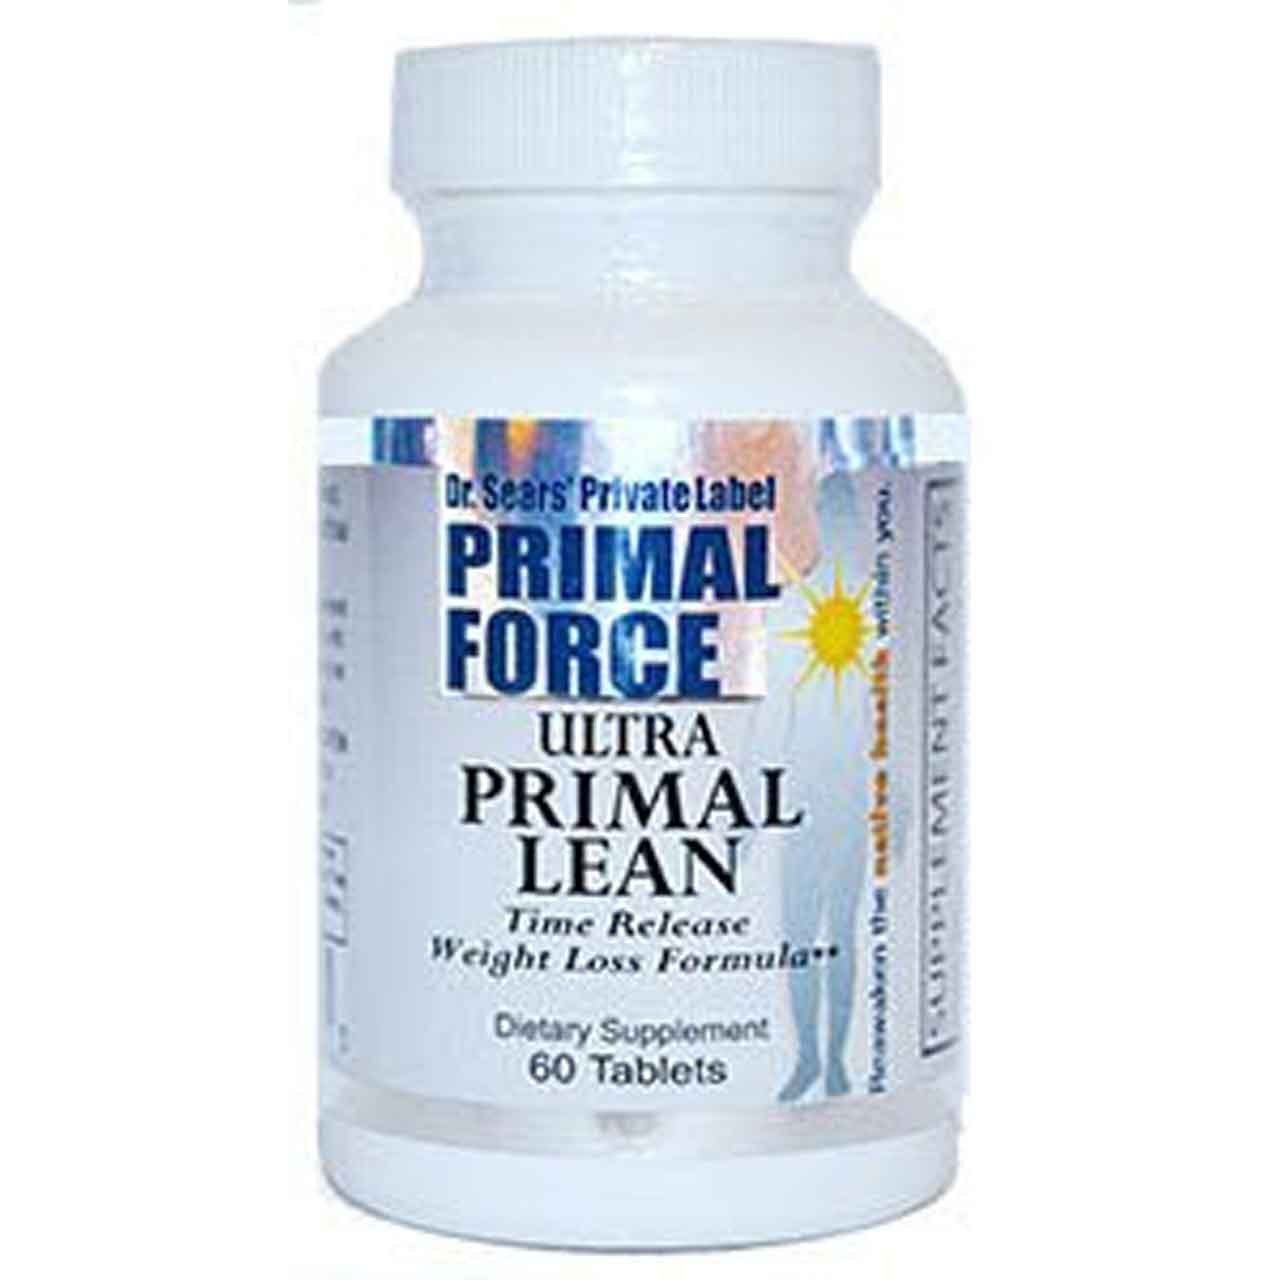 Ultra Primal Lean Primal Force